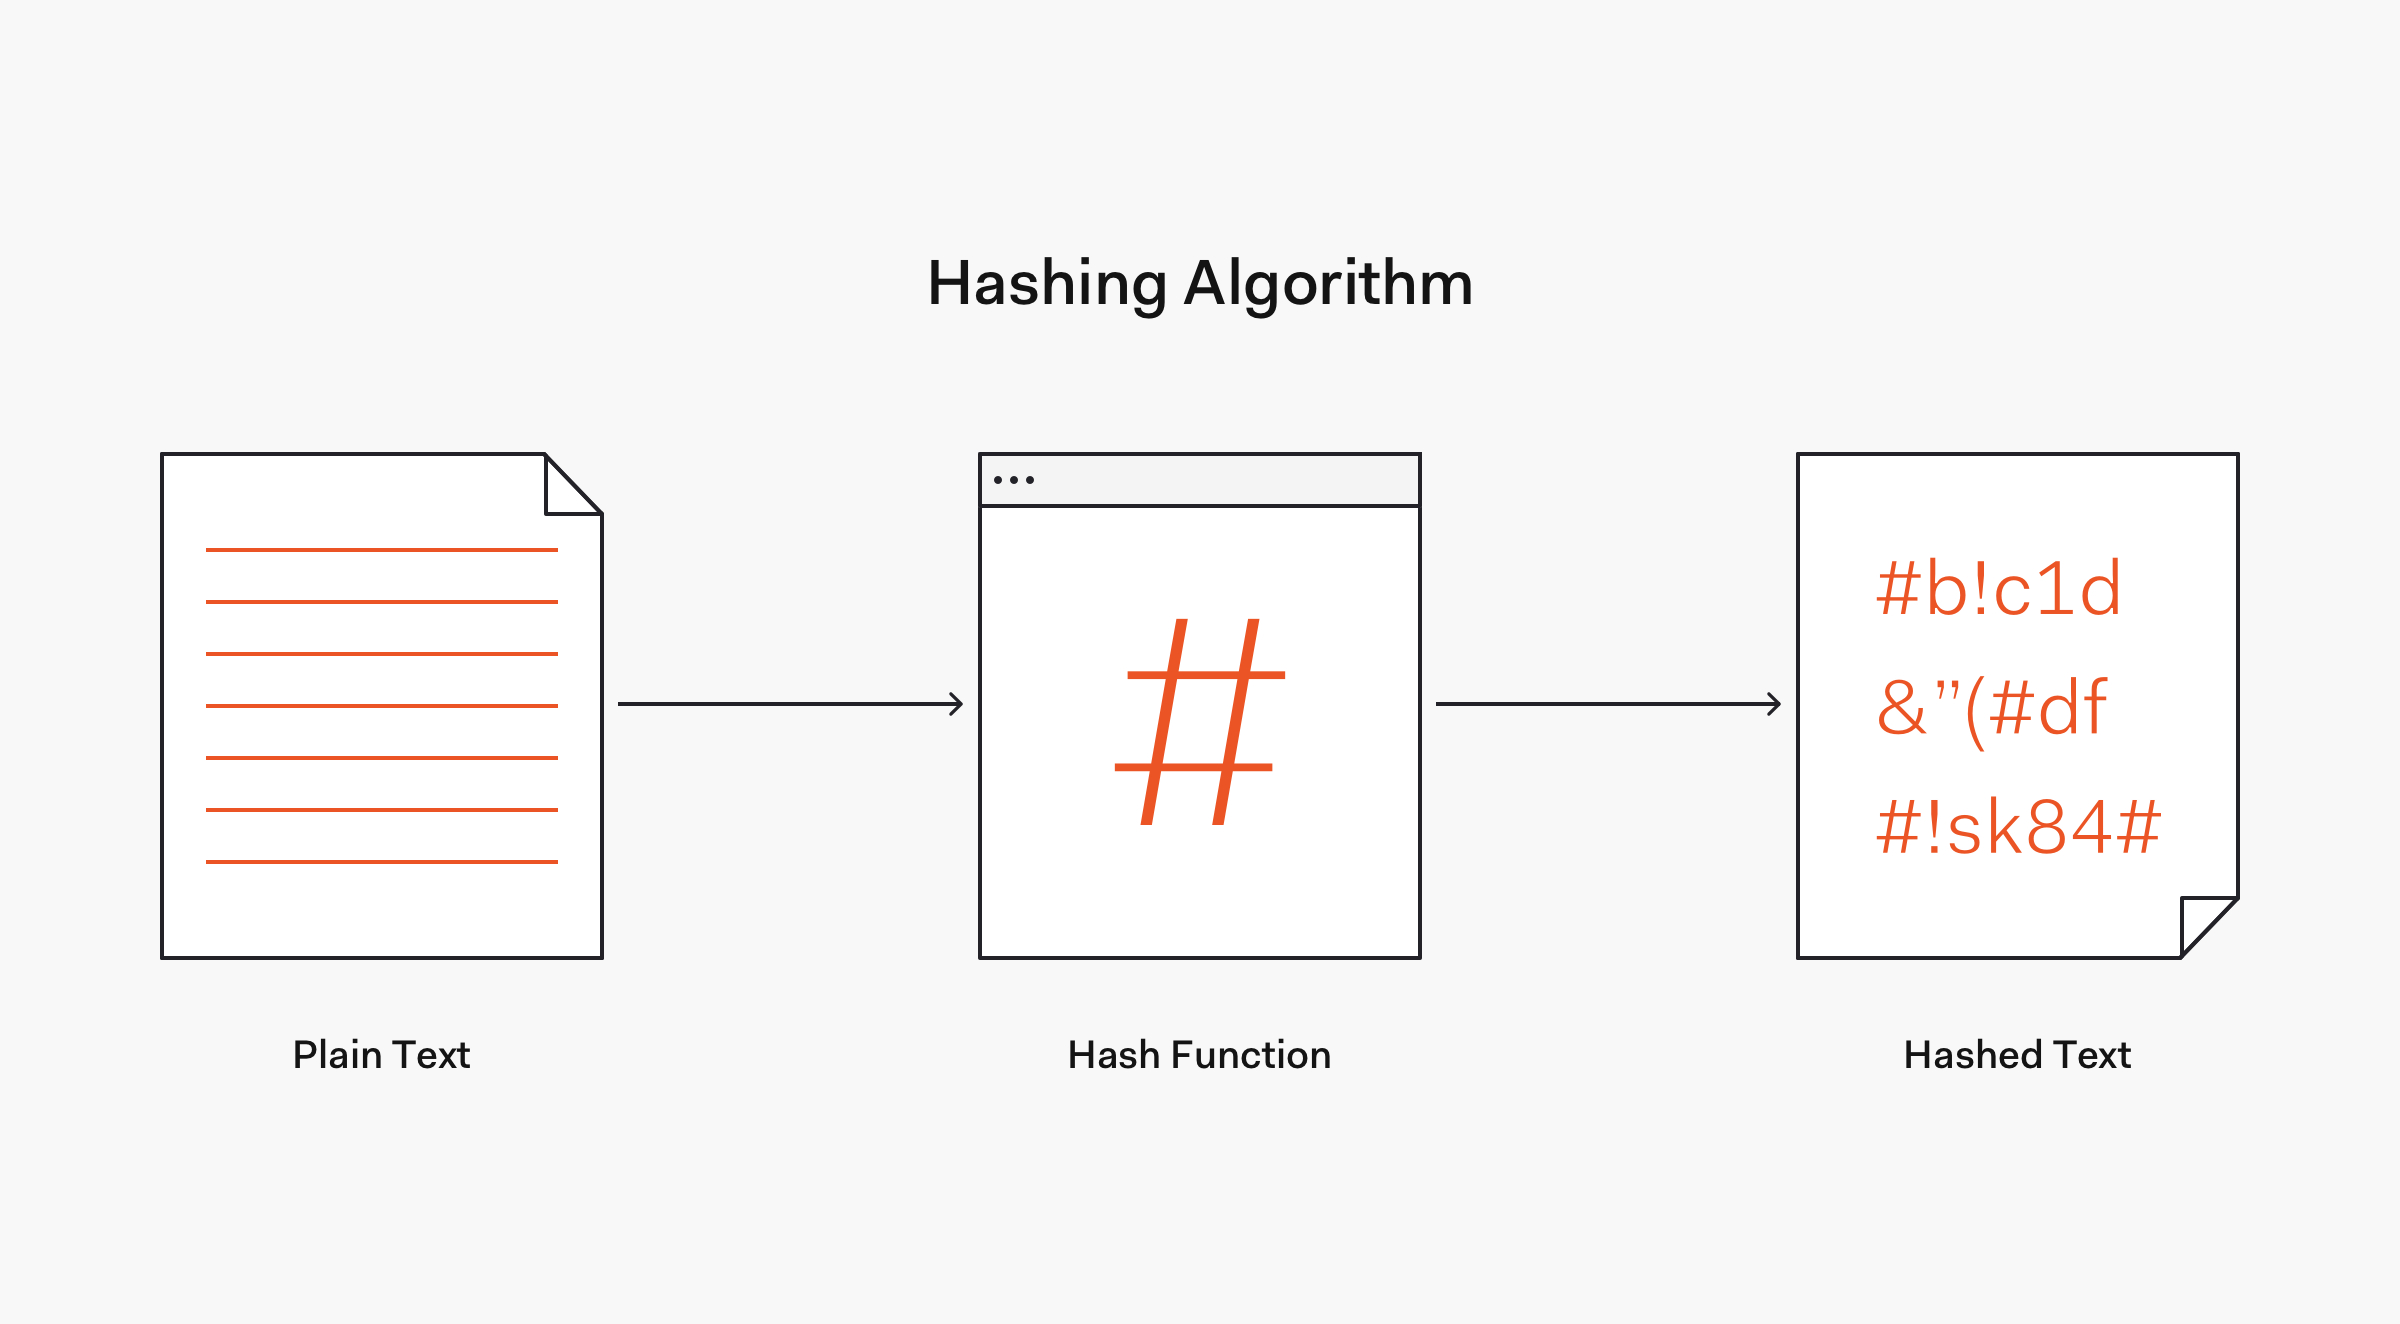 Hashing algorithm flow